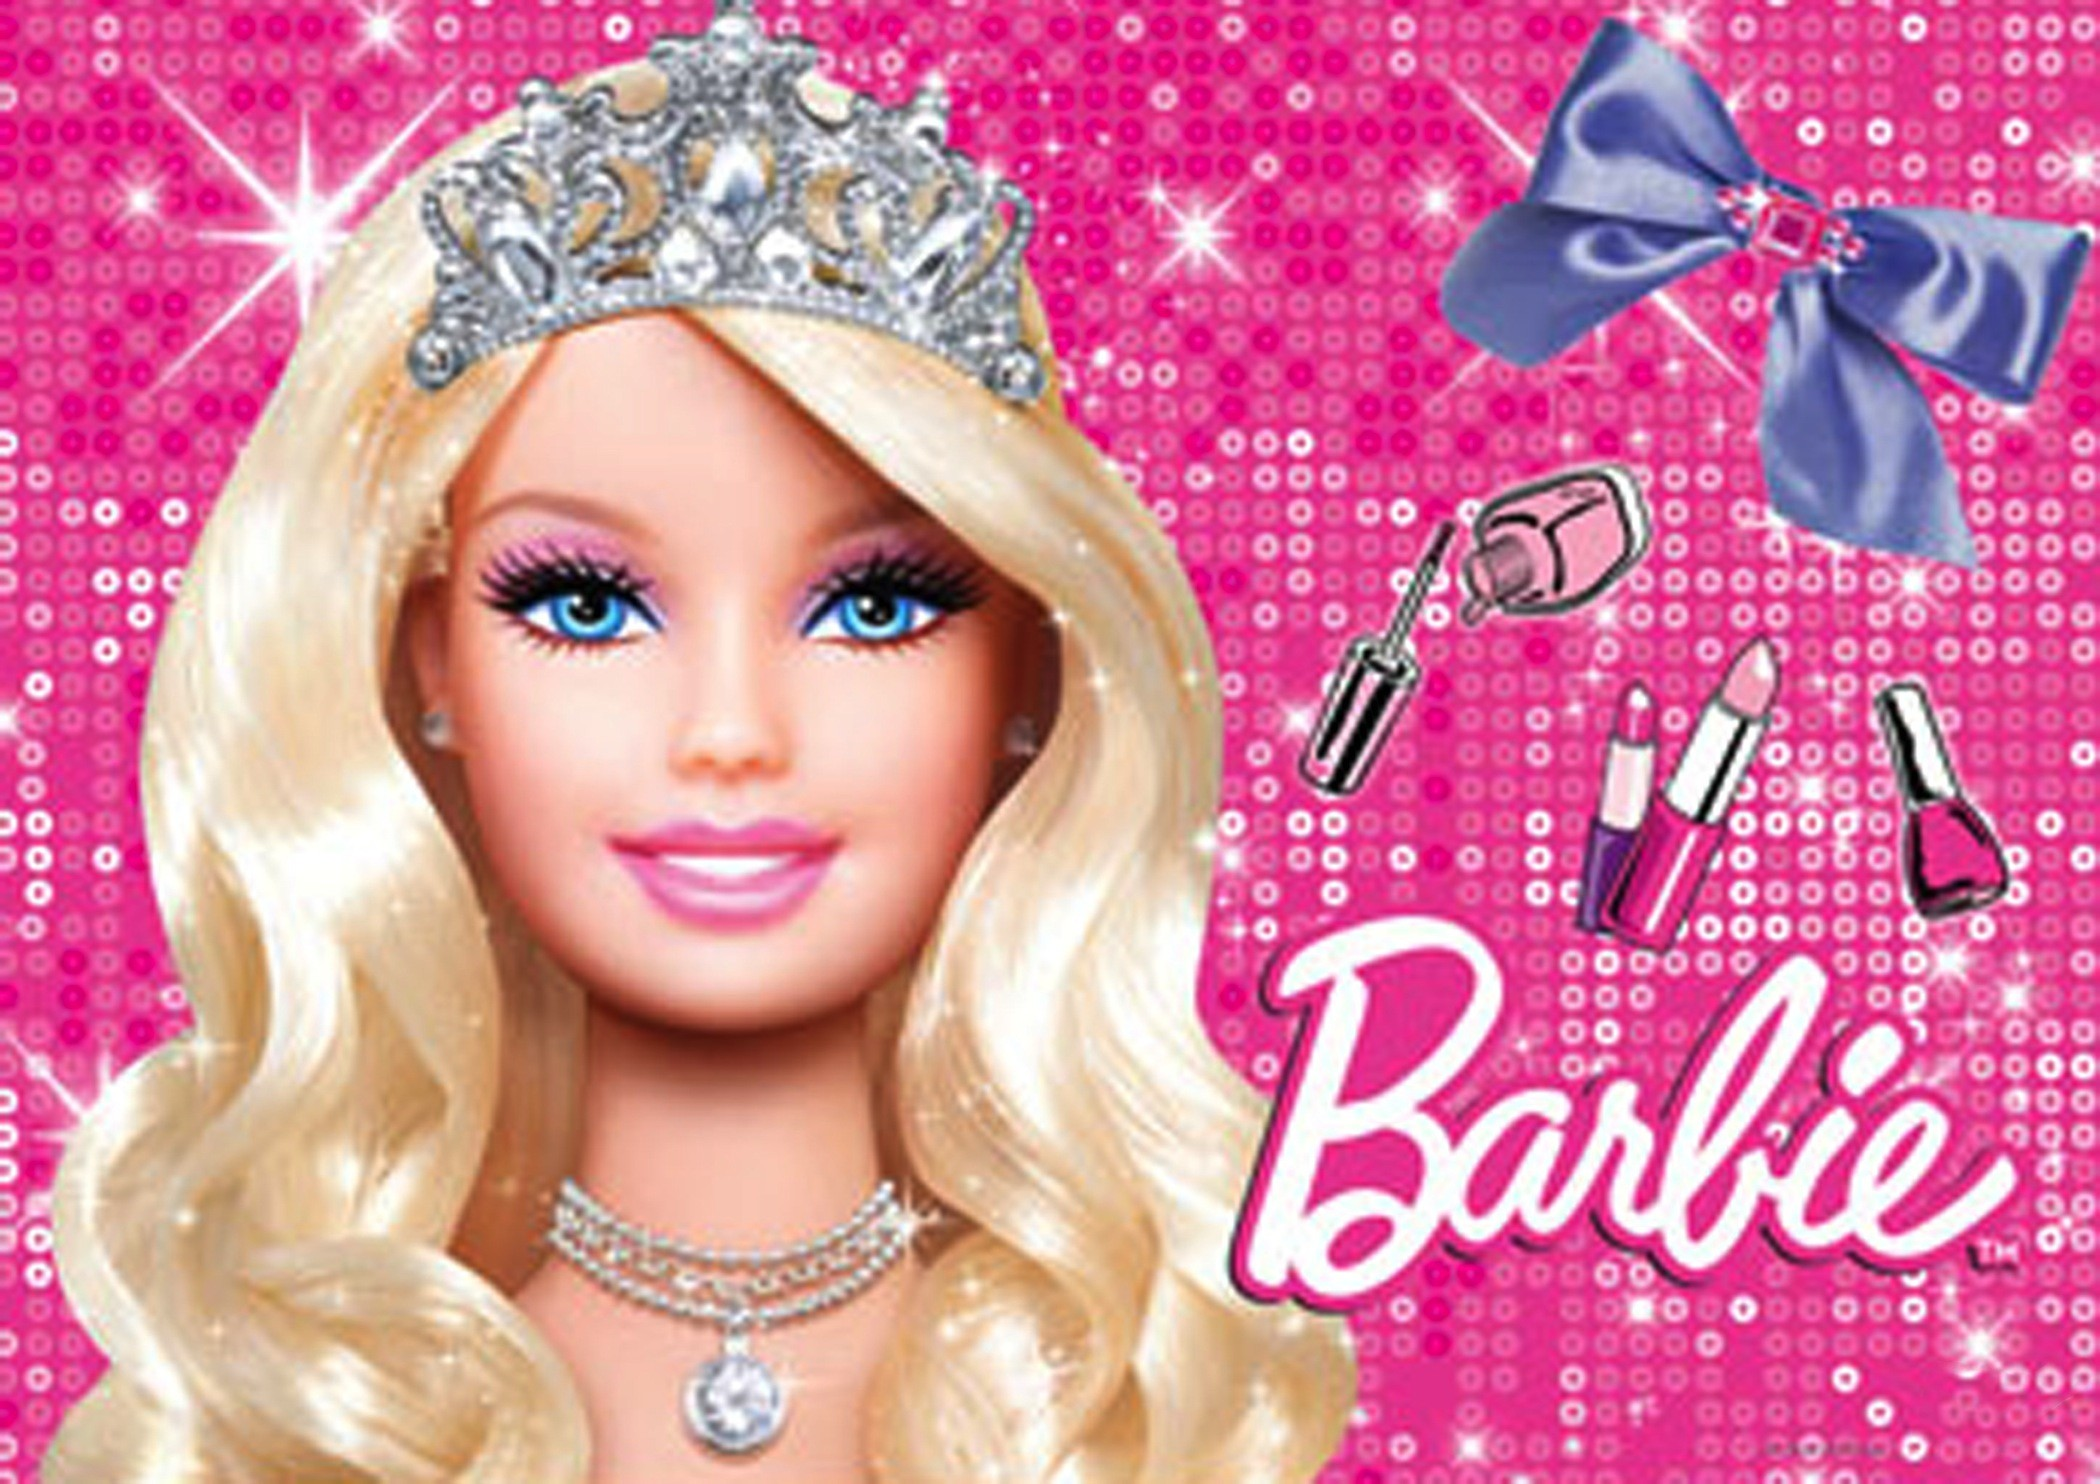 Latest Wallpaper Of Barbie On 2018 ①